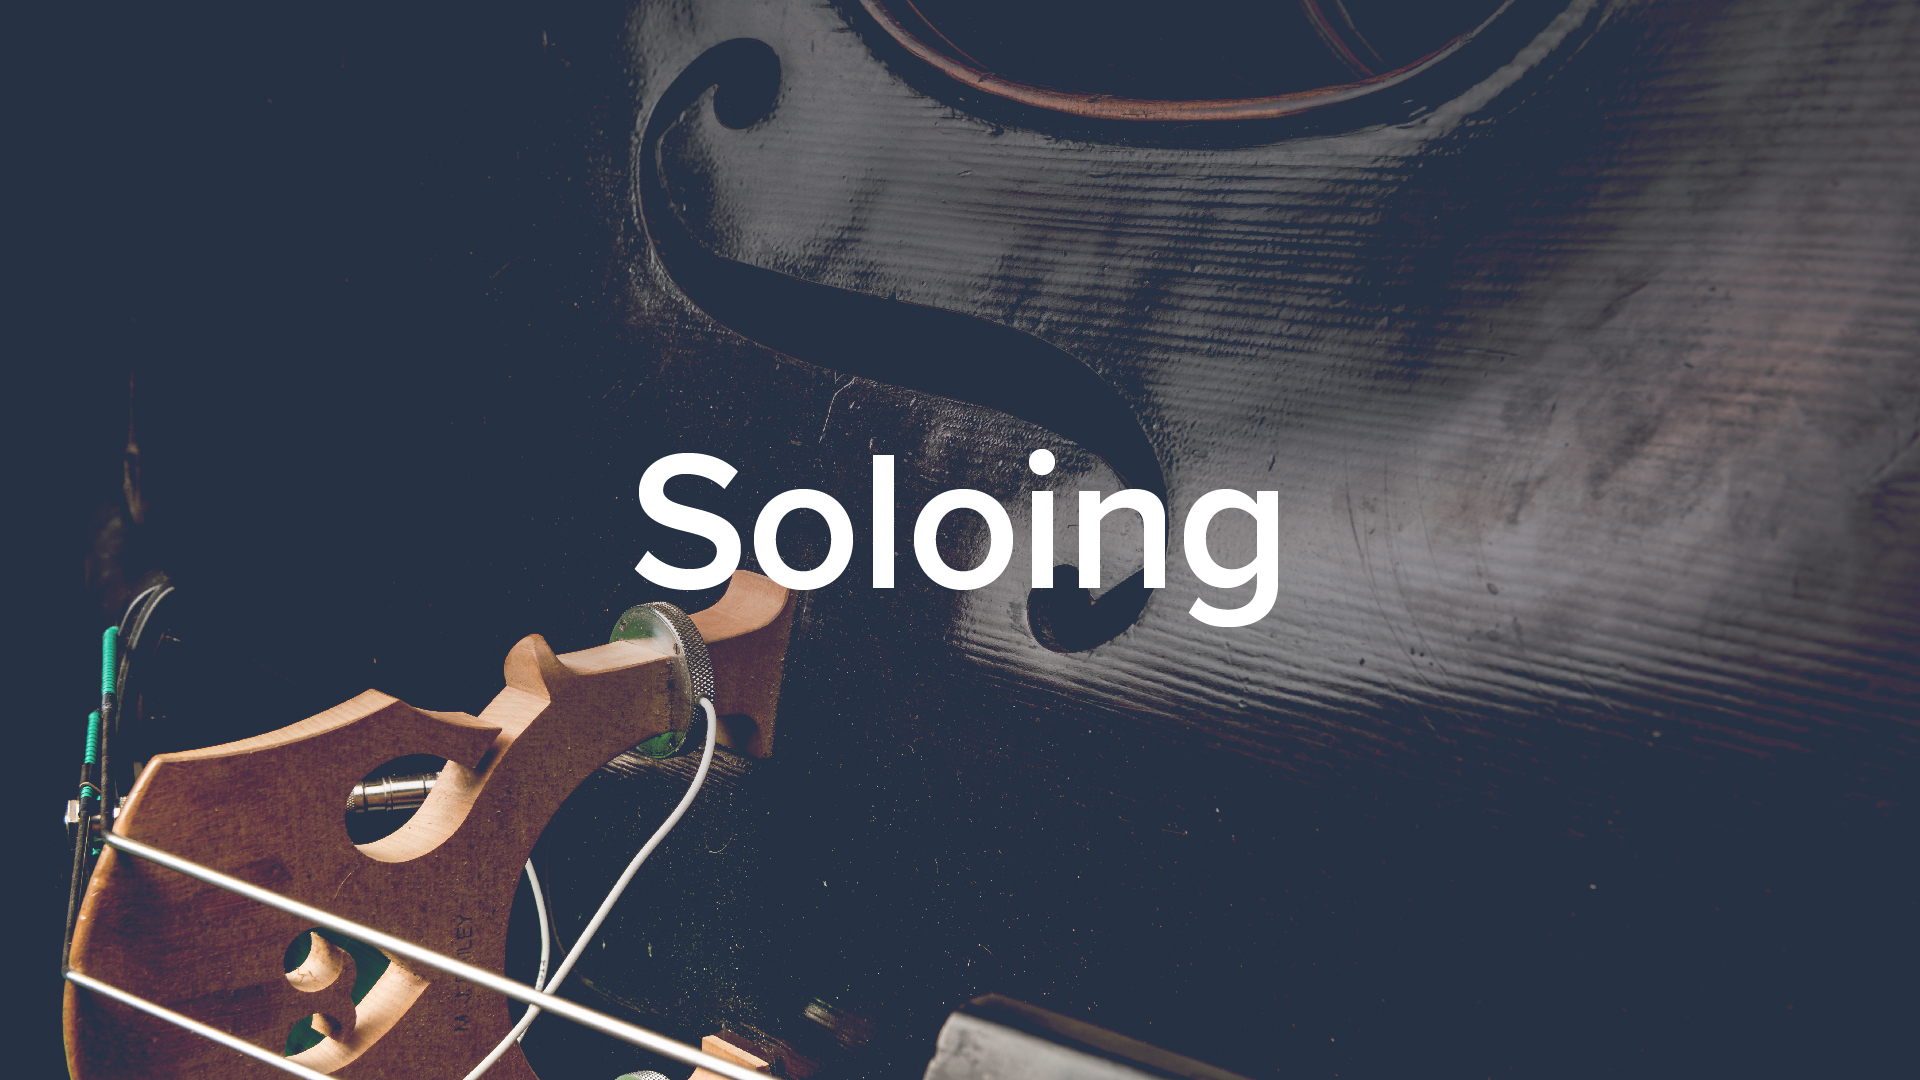 'Soloing: A step-by-step method' by Geoff Chalmers. 50 lessons, 4.5hrs.